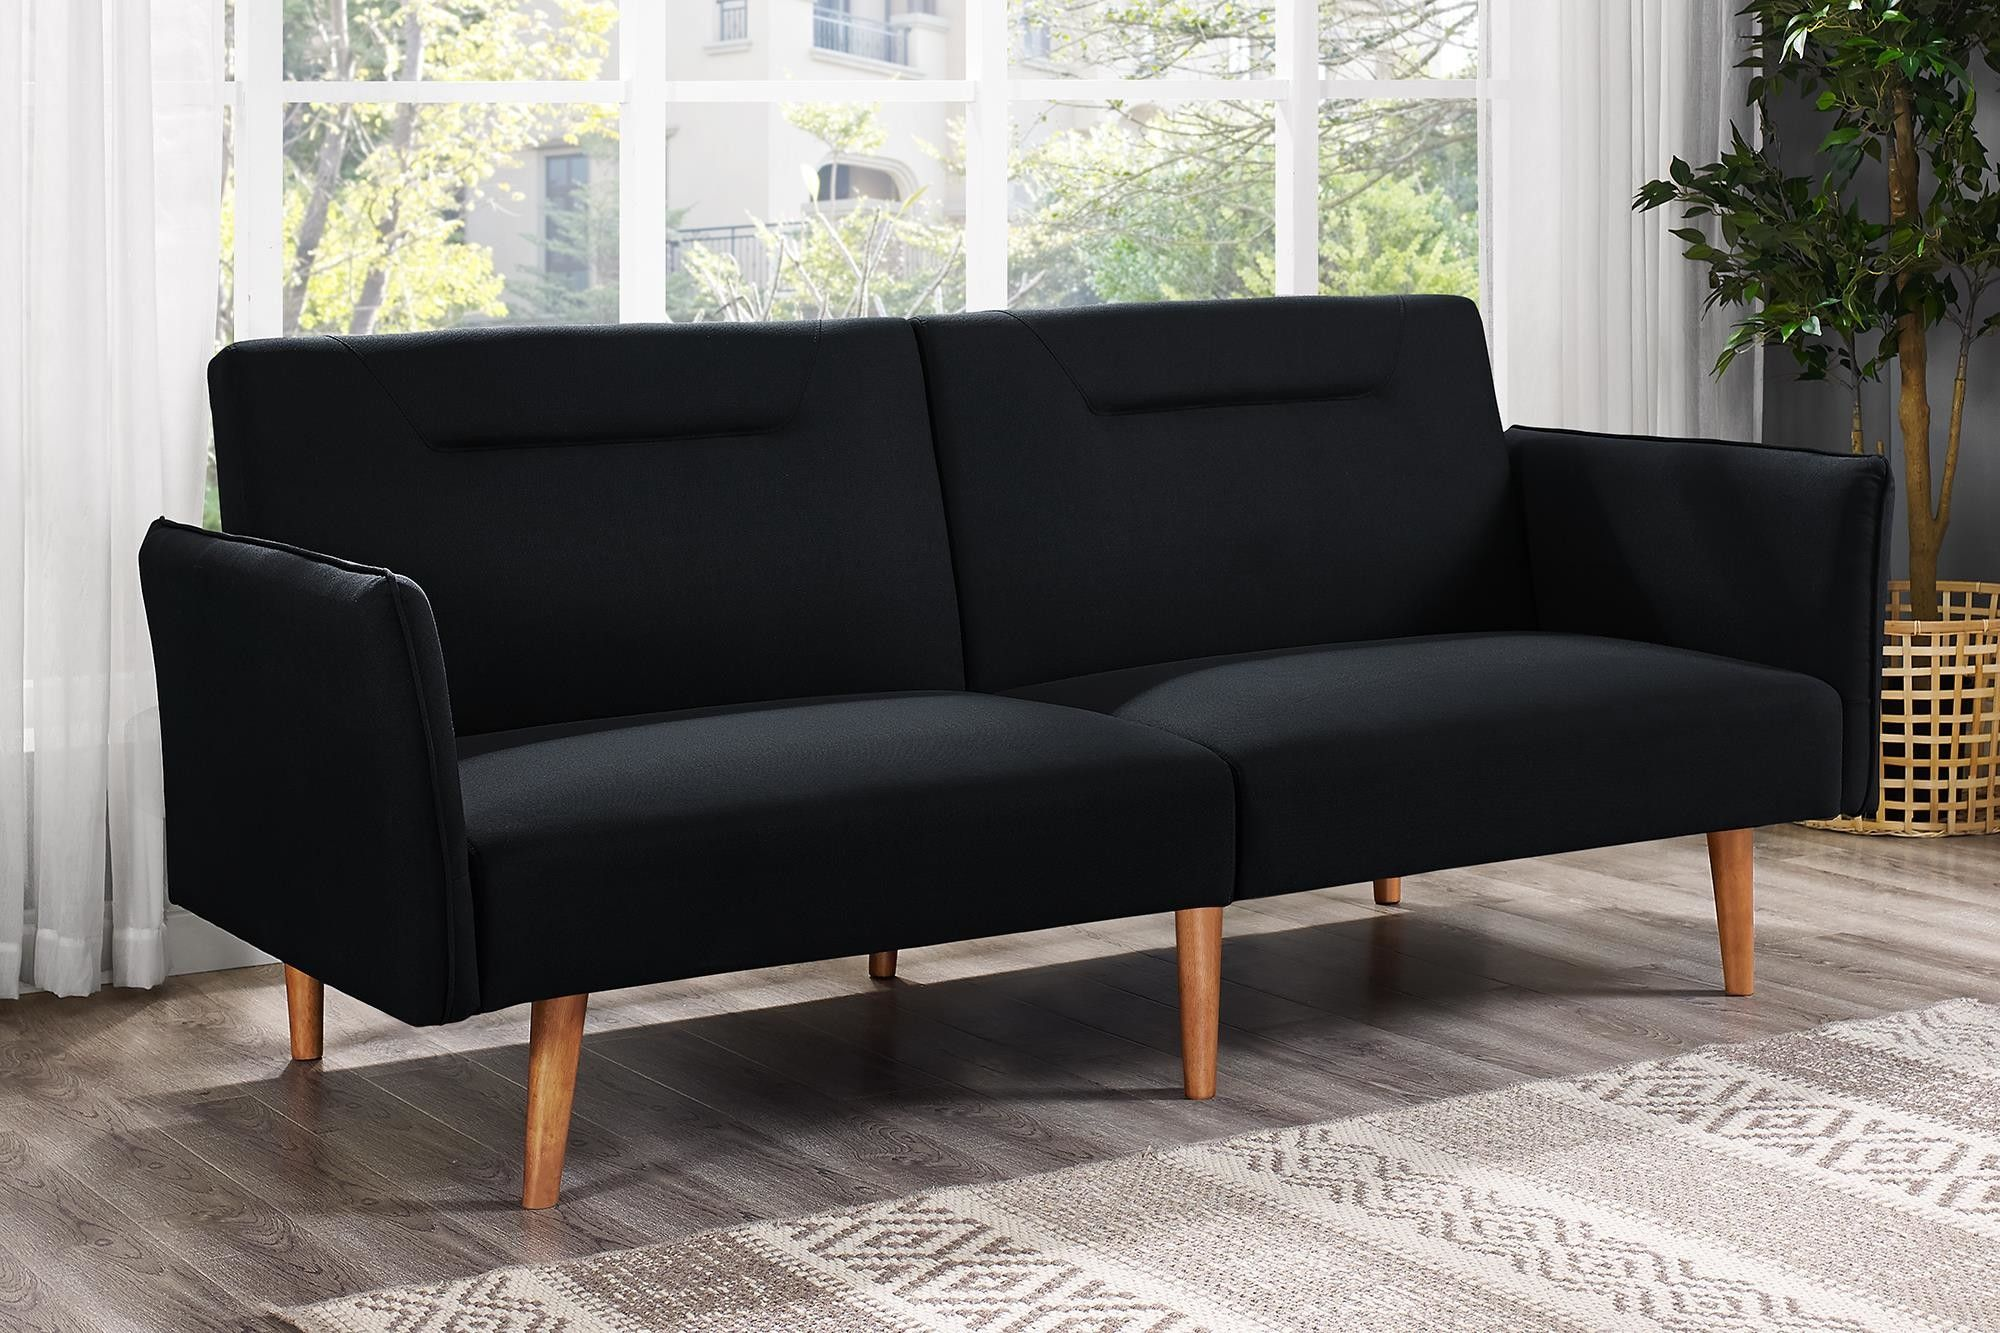 Fresno convertible sofa products pinterest convertible and